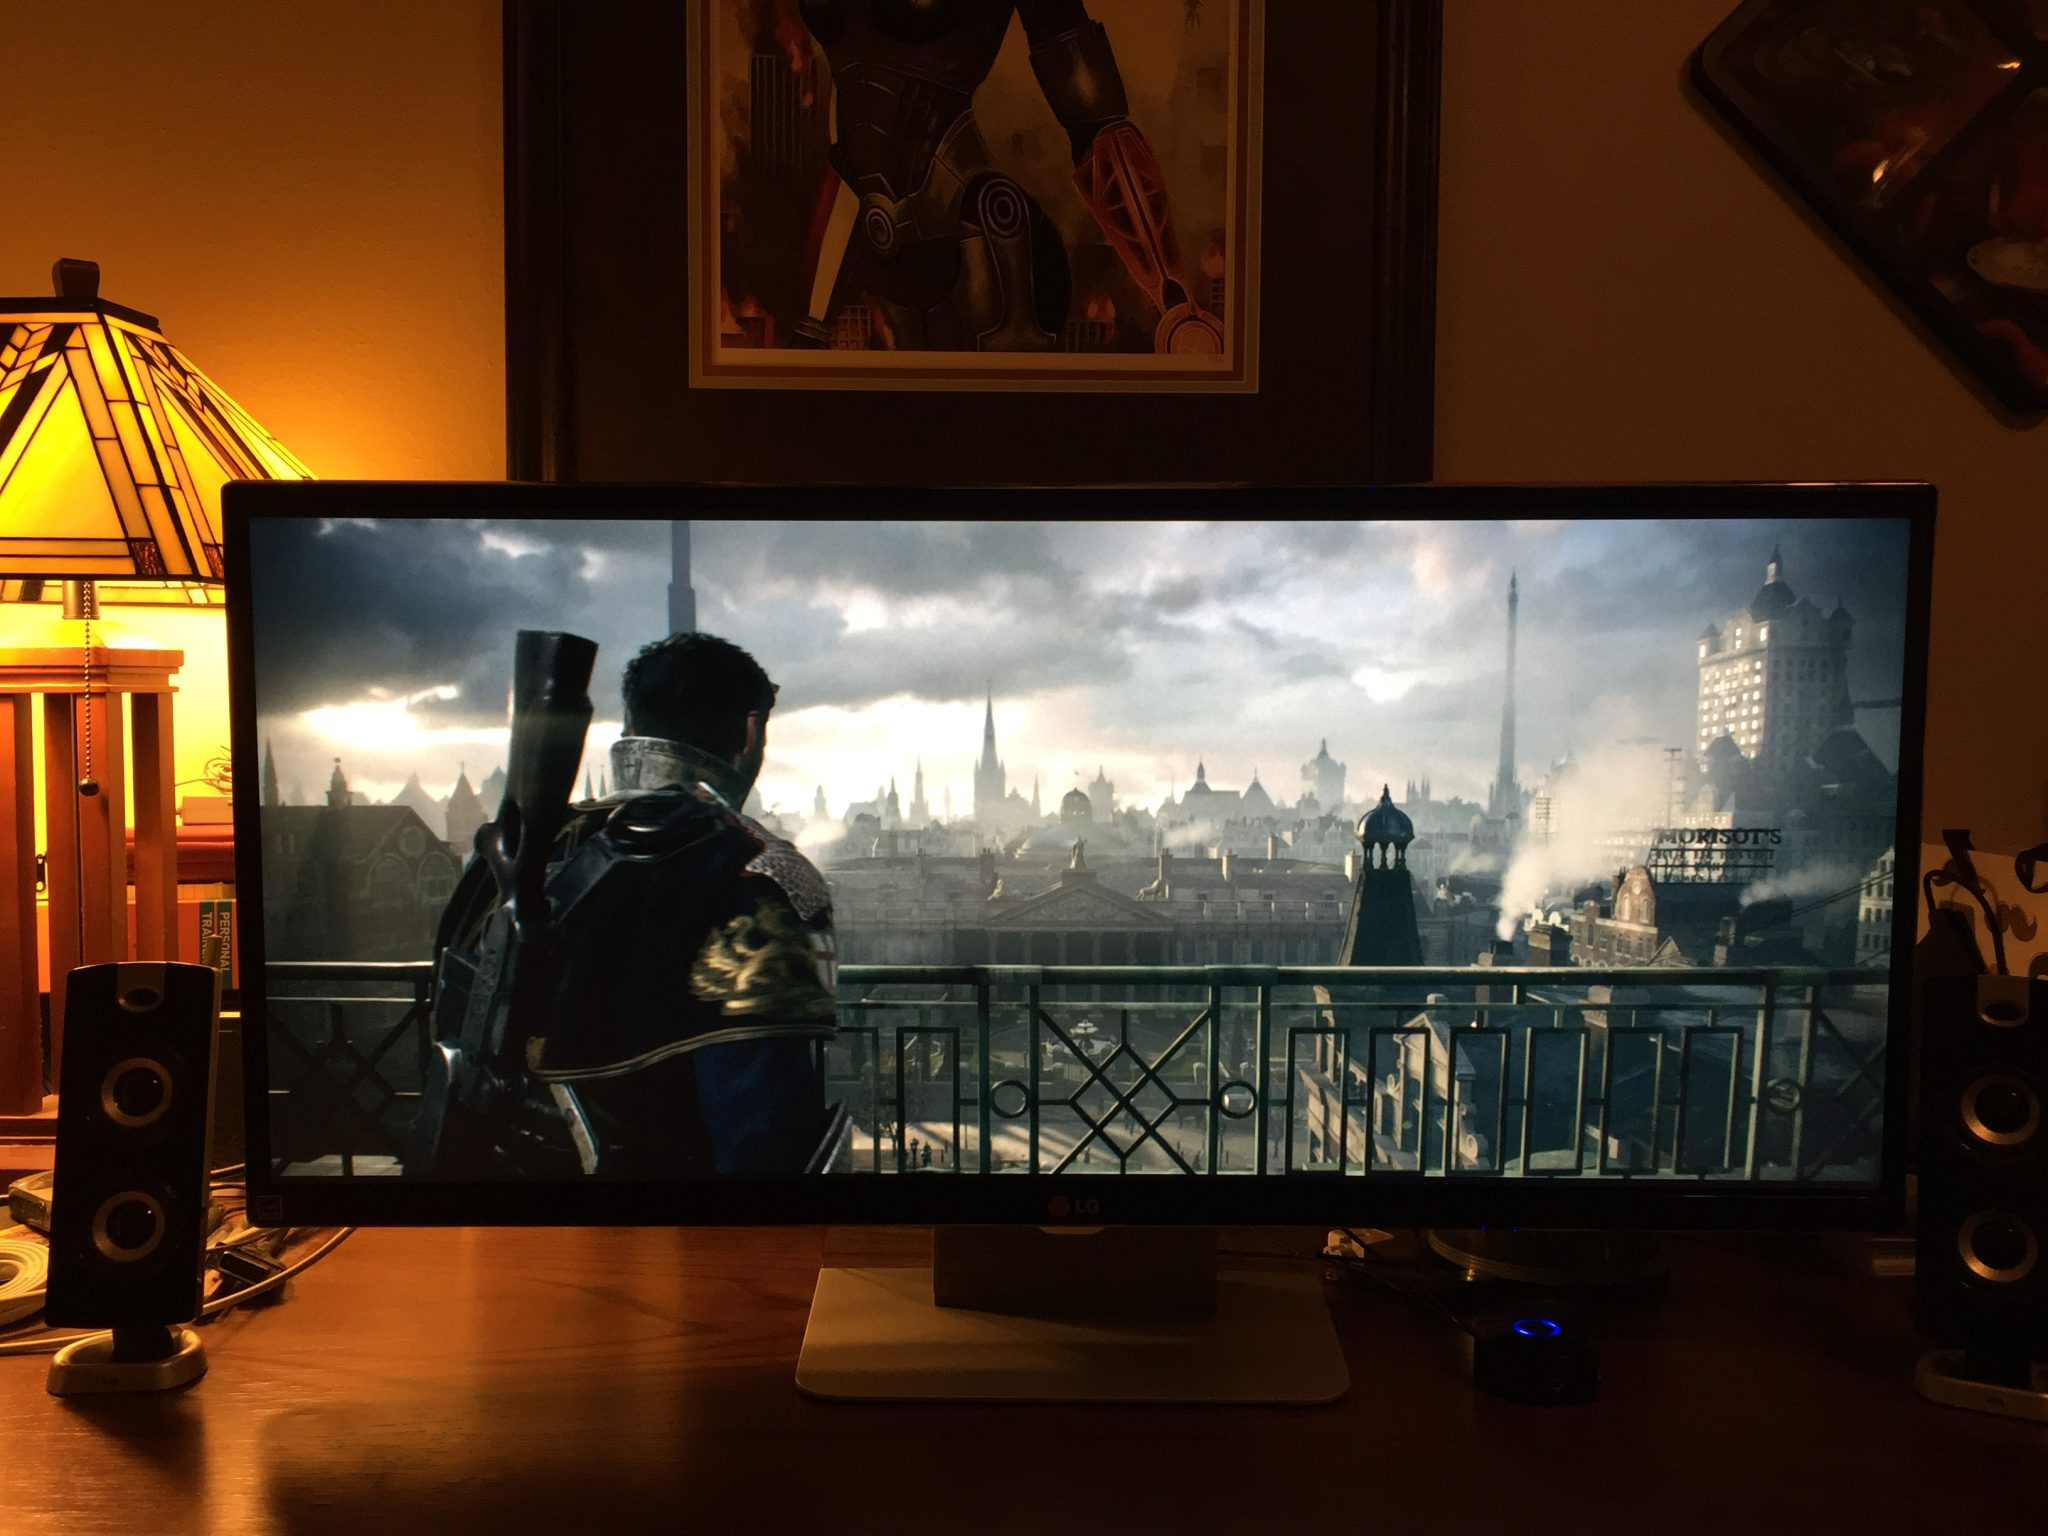 This Is How The Order 1886 Looks On A Native 21 9 Monitor